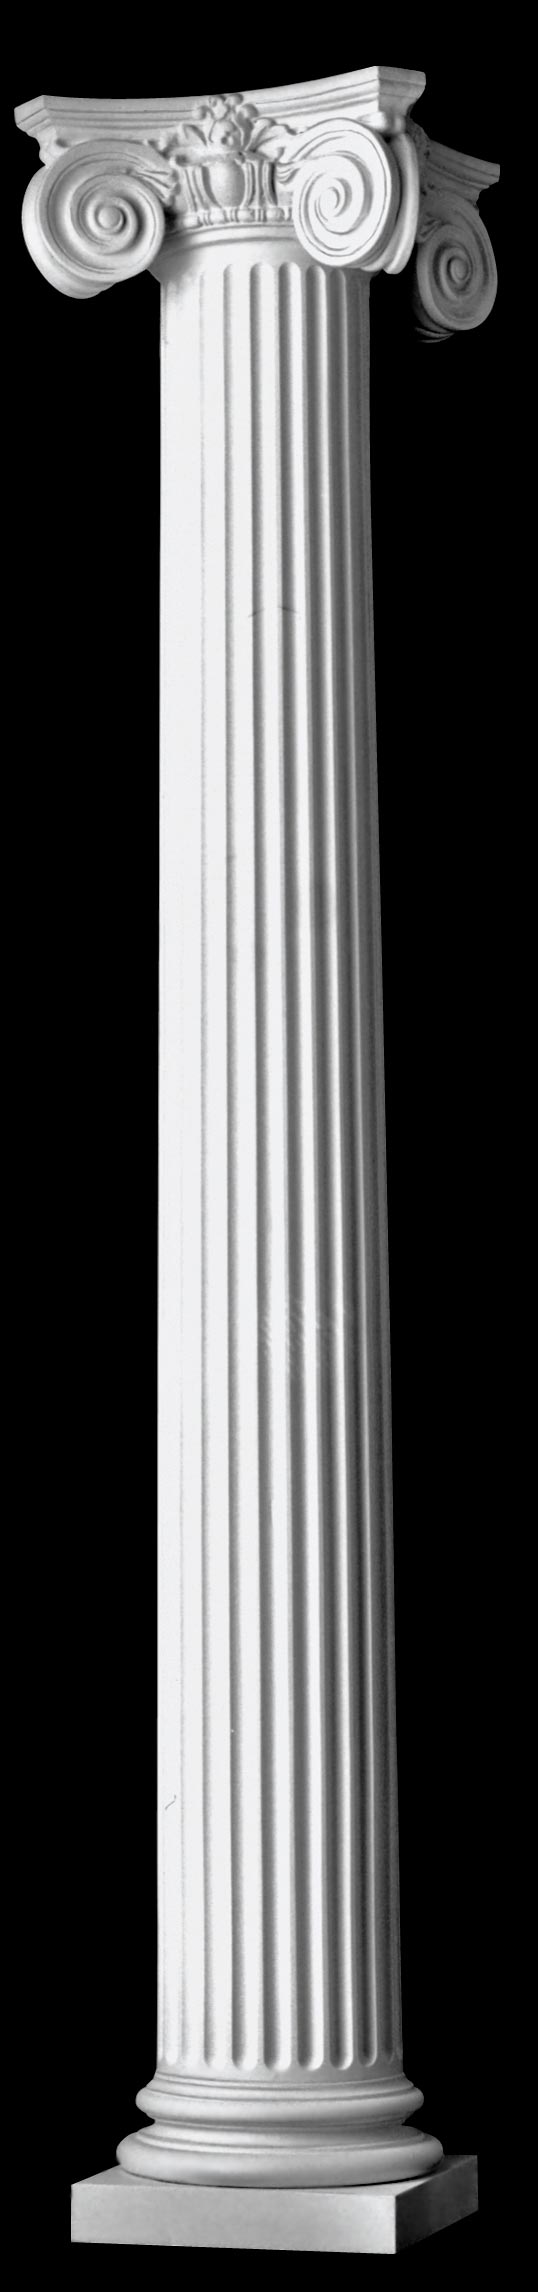 Fluted tapered scamozzi wood columns architectural for Architectural wood columns